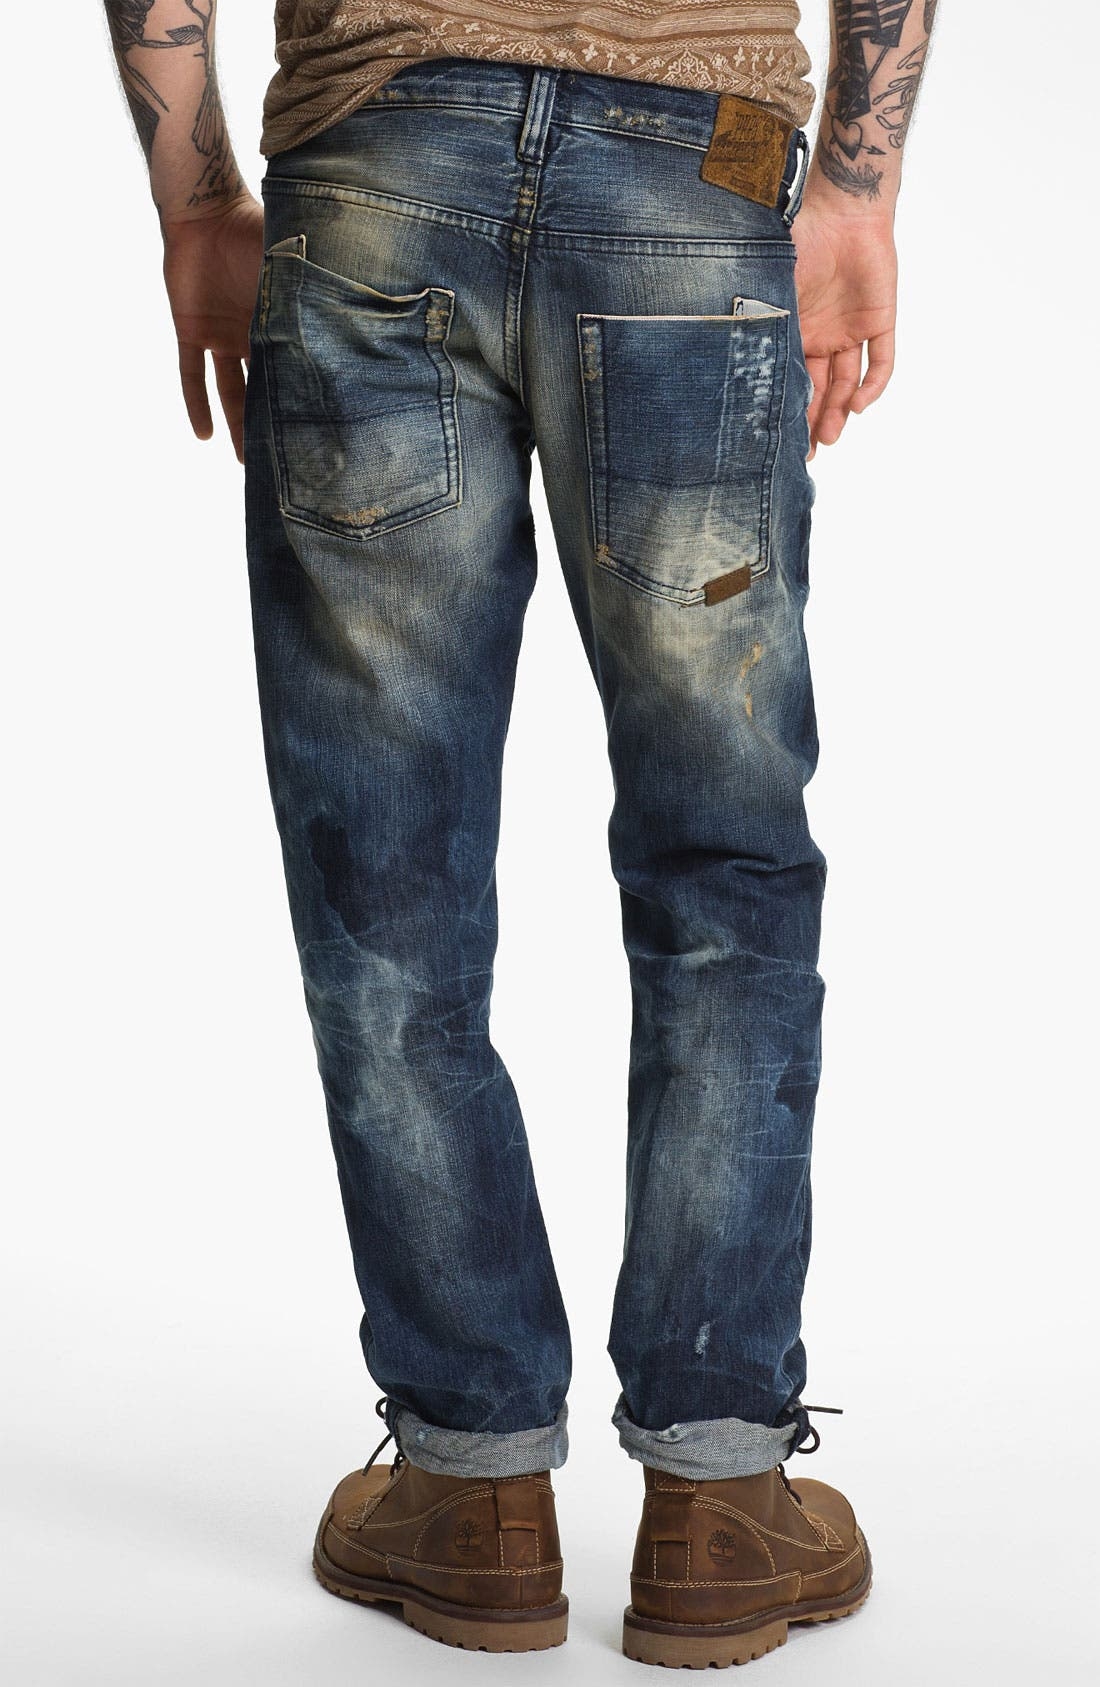 Alternate Image 1 Selected - PRPS 'Nautilus Barracuda' Straight Leg Jeans (Indigo)